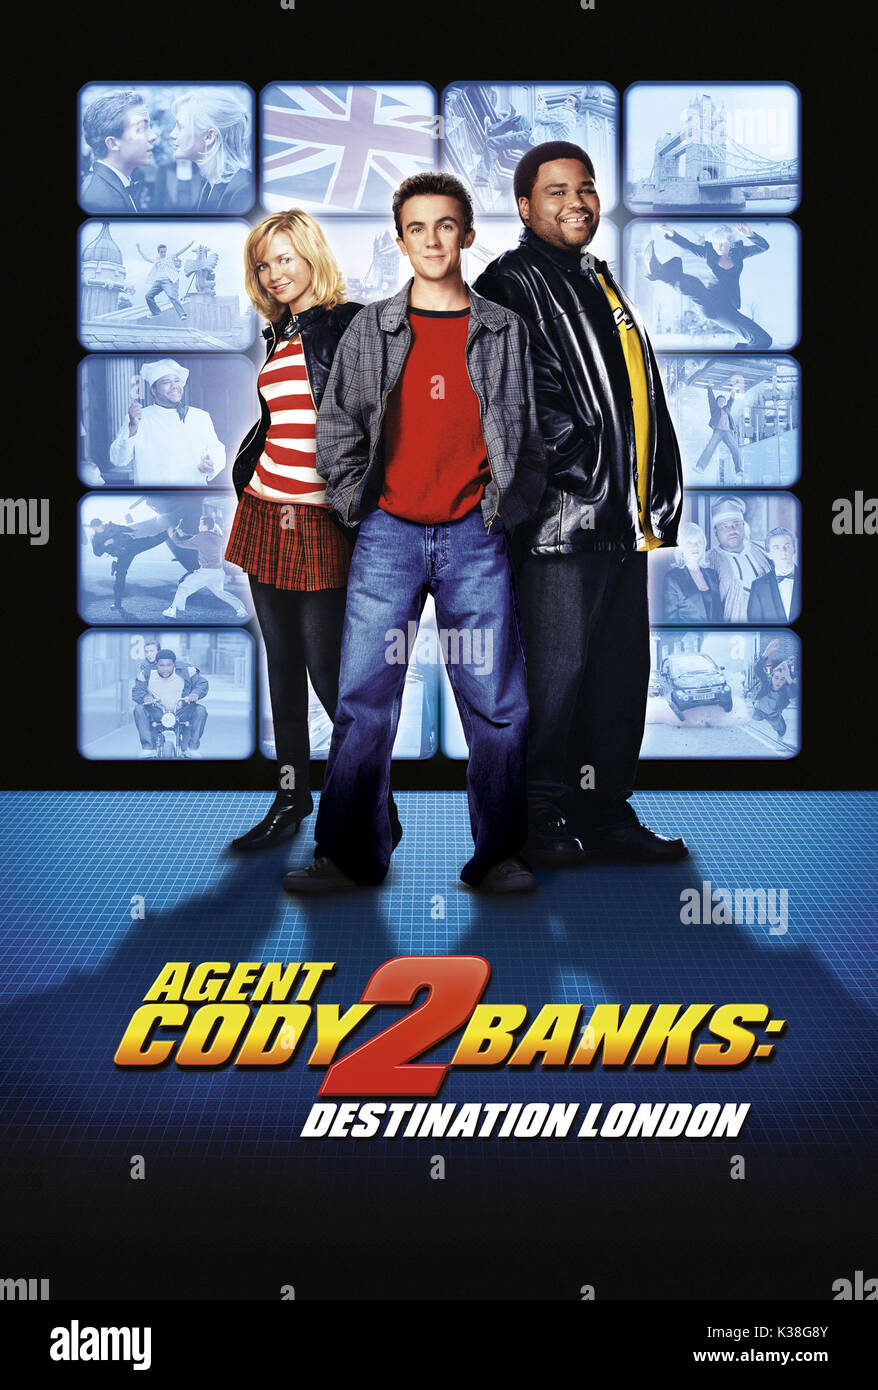 Agent Cody Banks 2 Destination London Posters Metro Goldwyn Mayer Picture From The Ronald Grant Archive